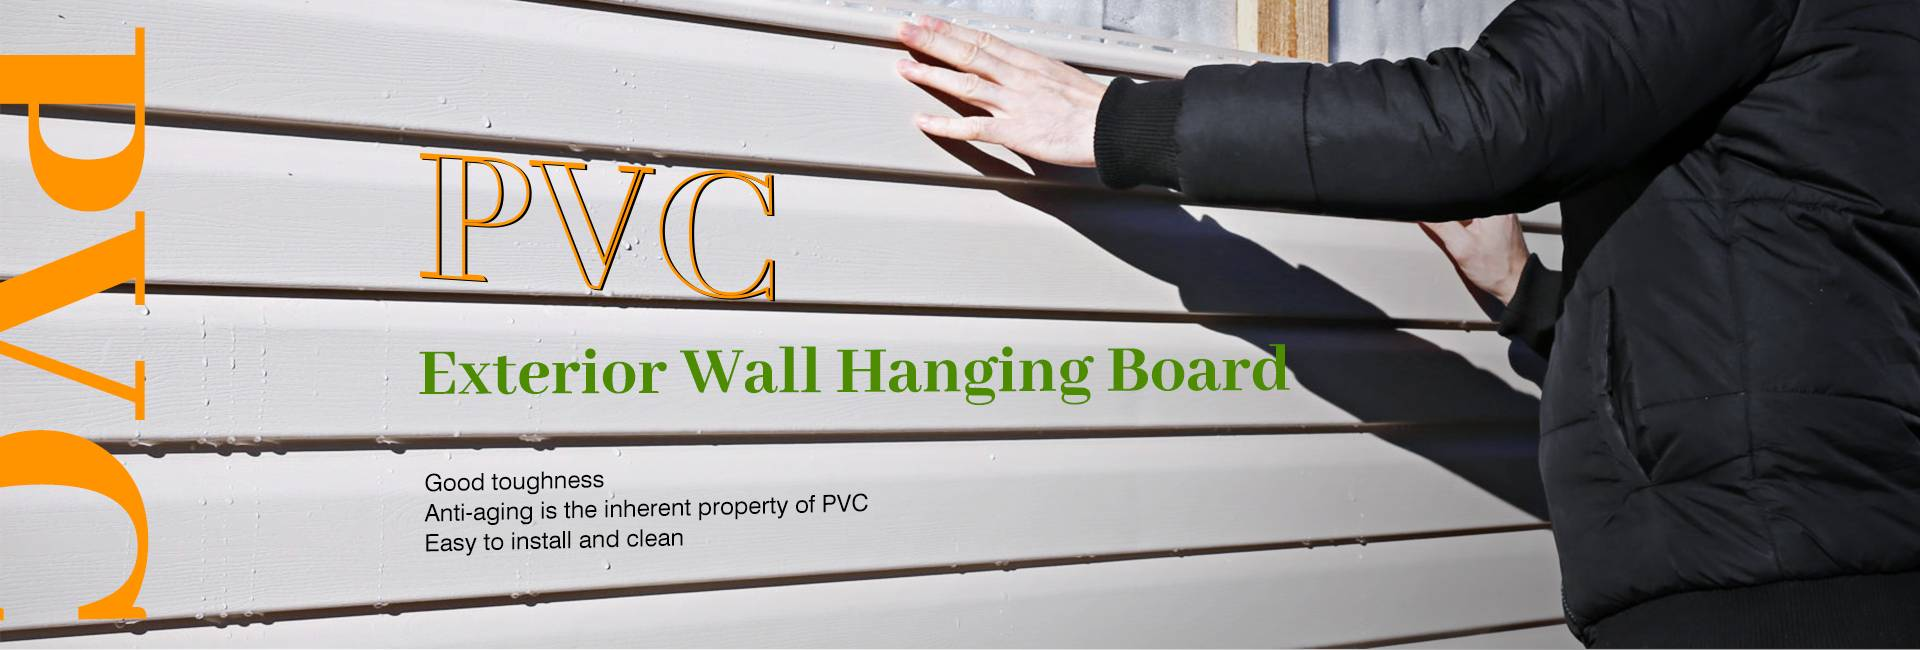 PVC Exterior Wall Hanging Board